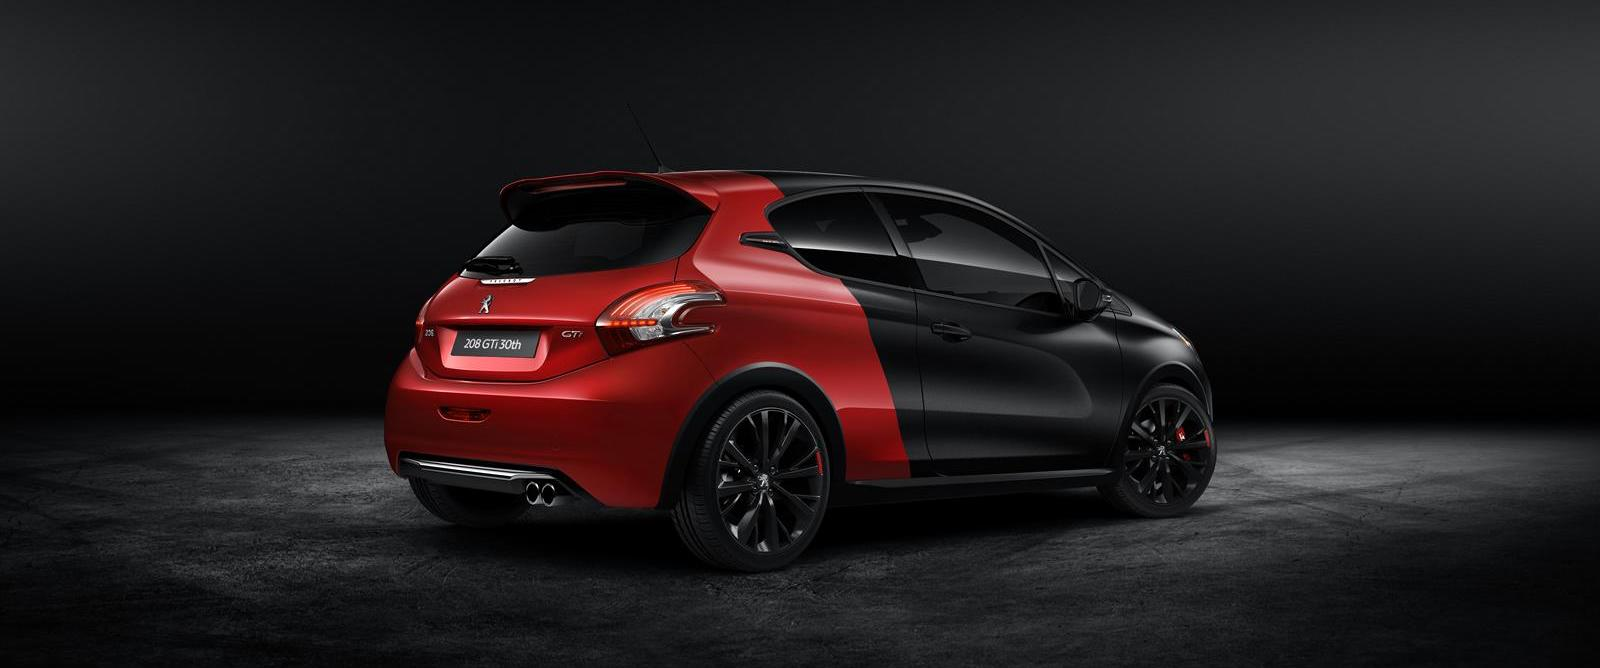 Peugeot GTi Nameplate Could Be Replaced By Peugeot Sport Engineered In 2020